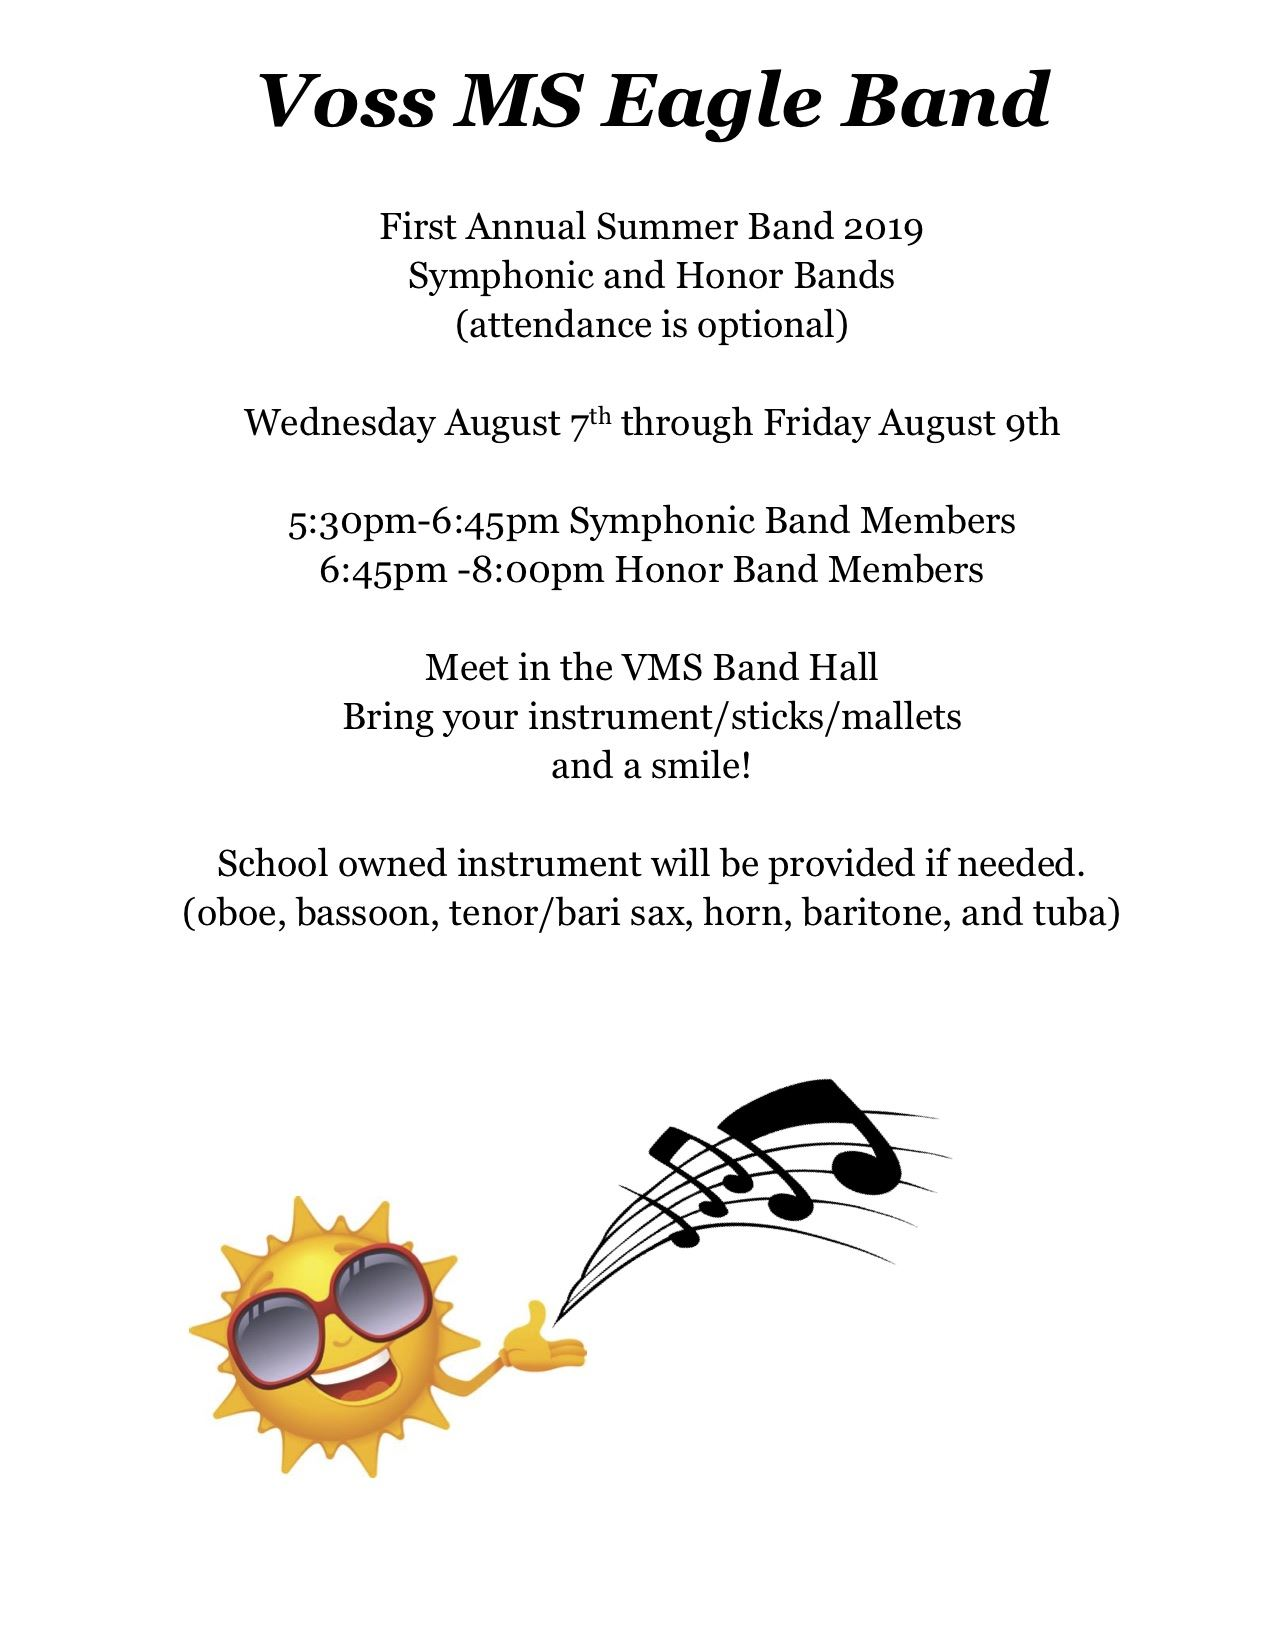 Honors and Symphonic Summer Band